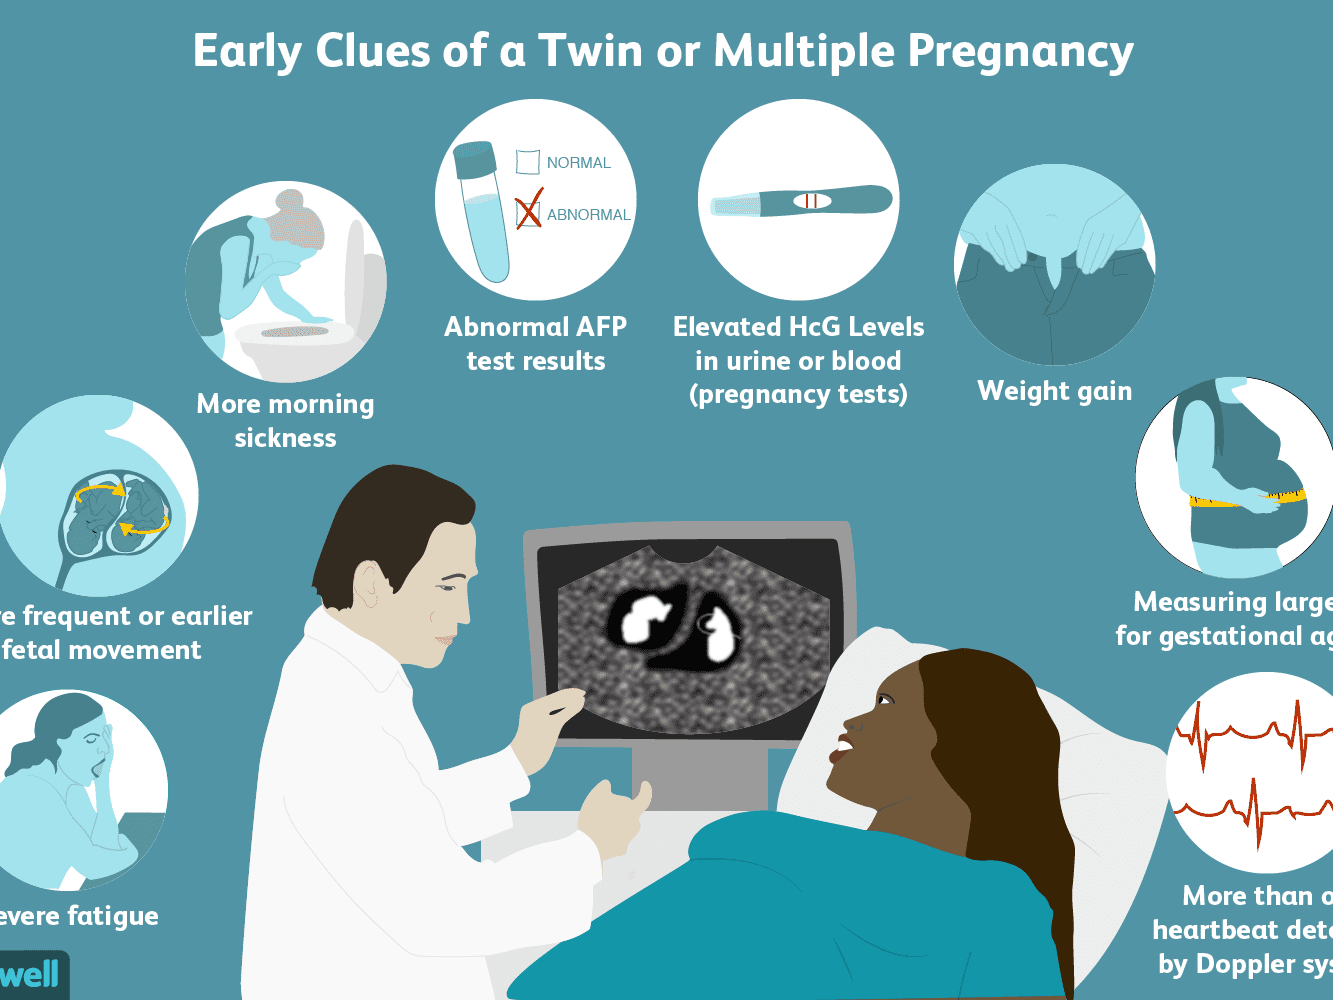 Signs and Symptoms of a Twin or Multiple Pregnancy